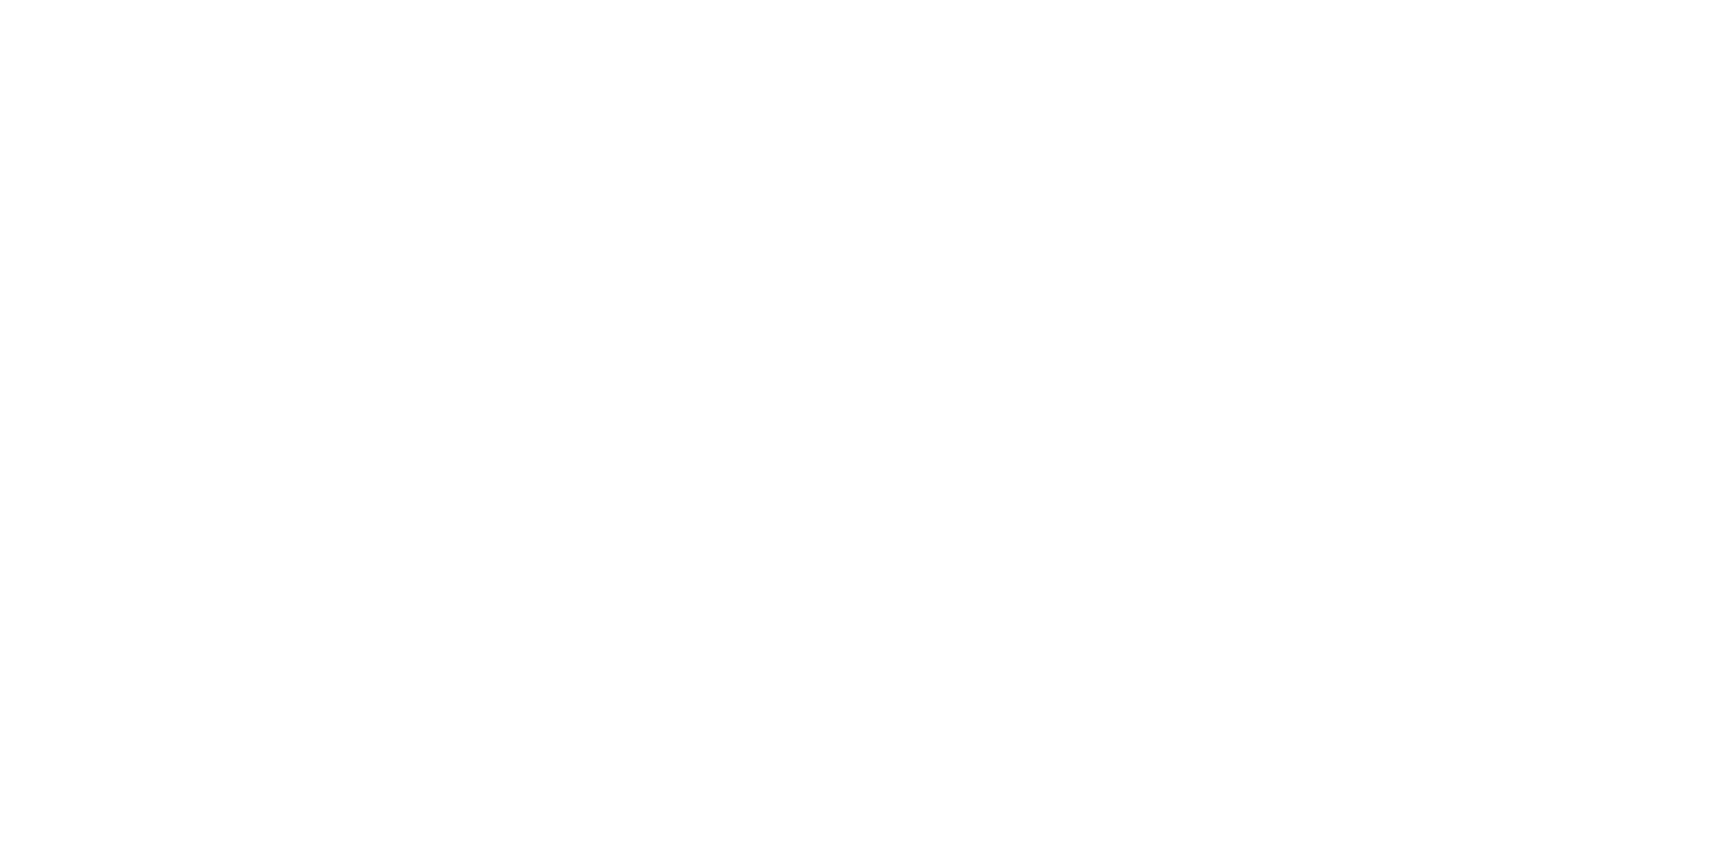 Fiddner and Company